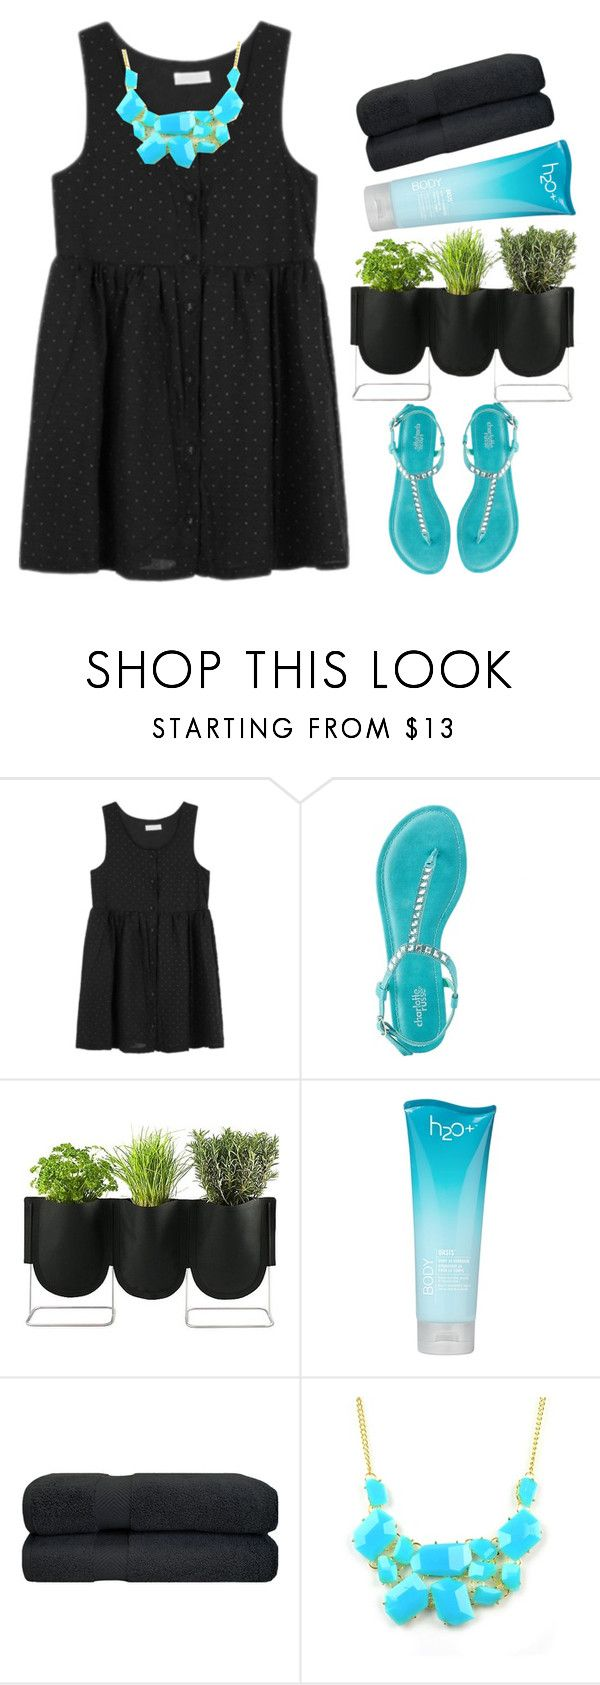 """""""016"""" by lesliekagengele ❤ liked on Polyvore featuring Charlotte Russe, Authentics, H2O+ and Emi Jewellery"""